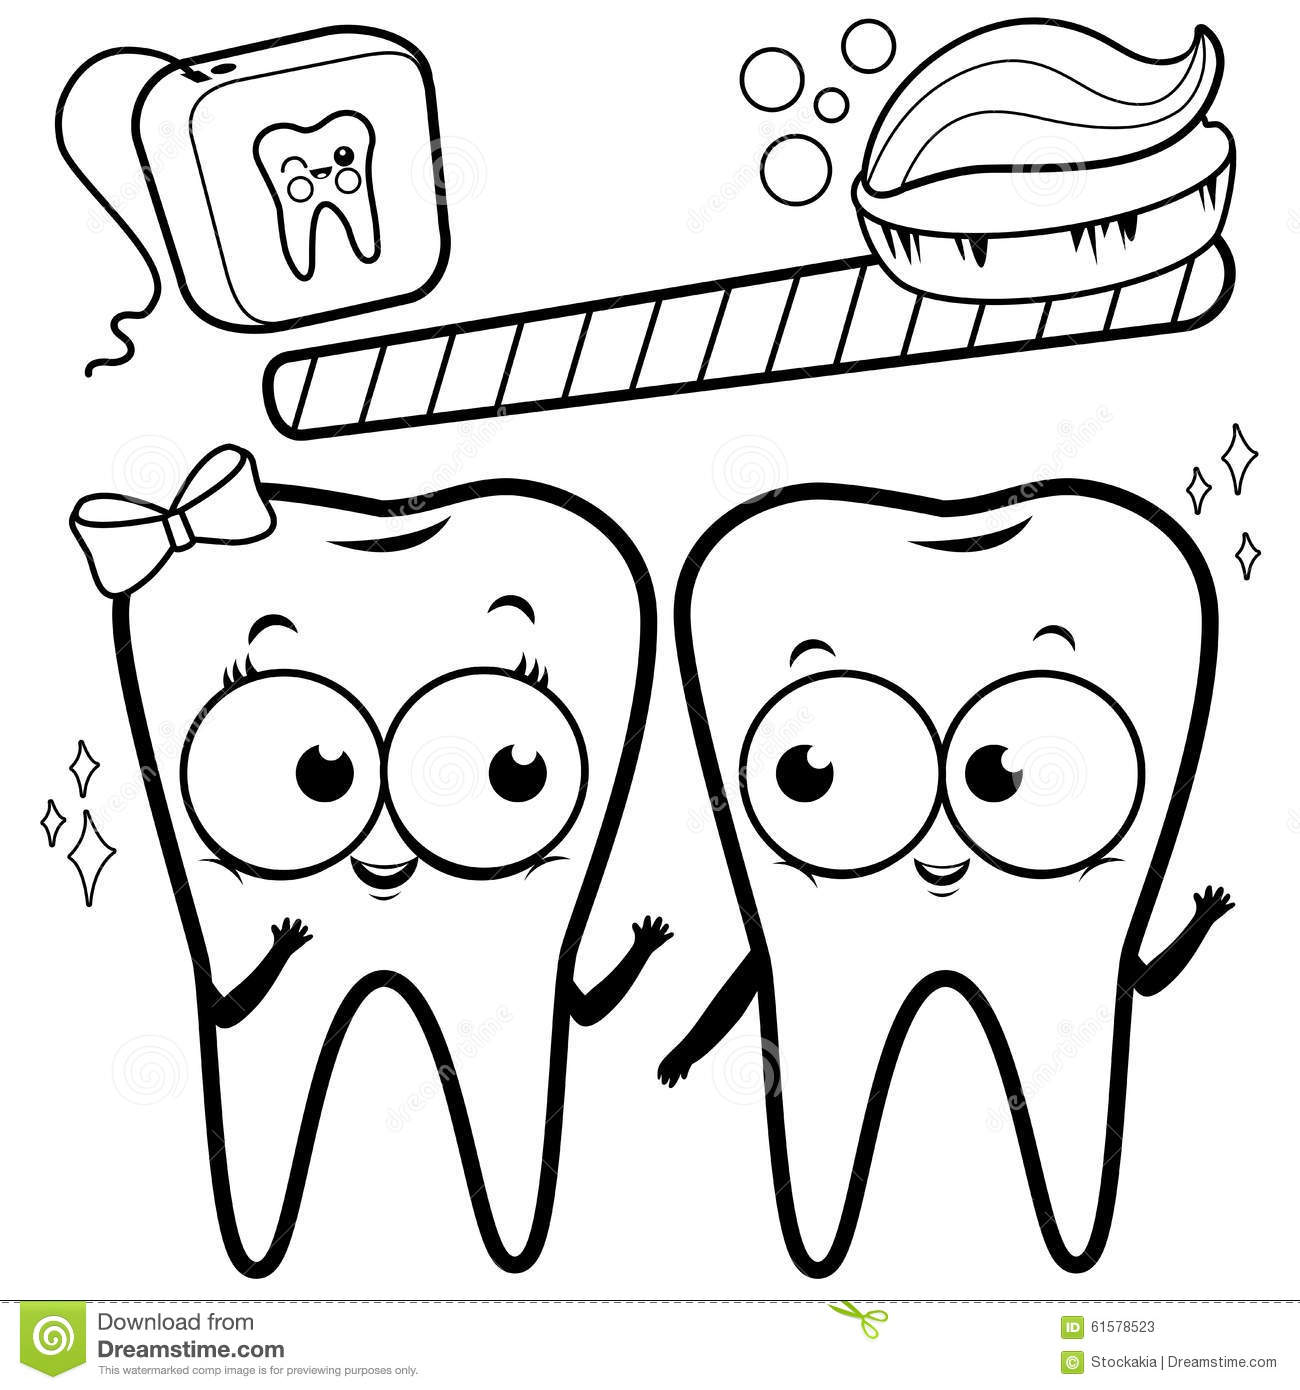 Coloring Page Cartoon Teeth With Toothbrush And Dental Floss Stock